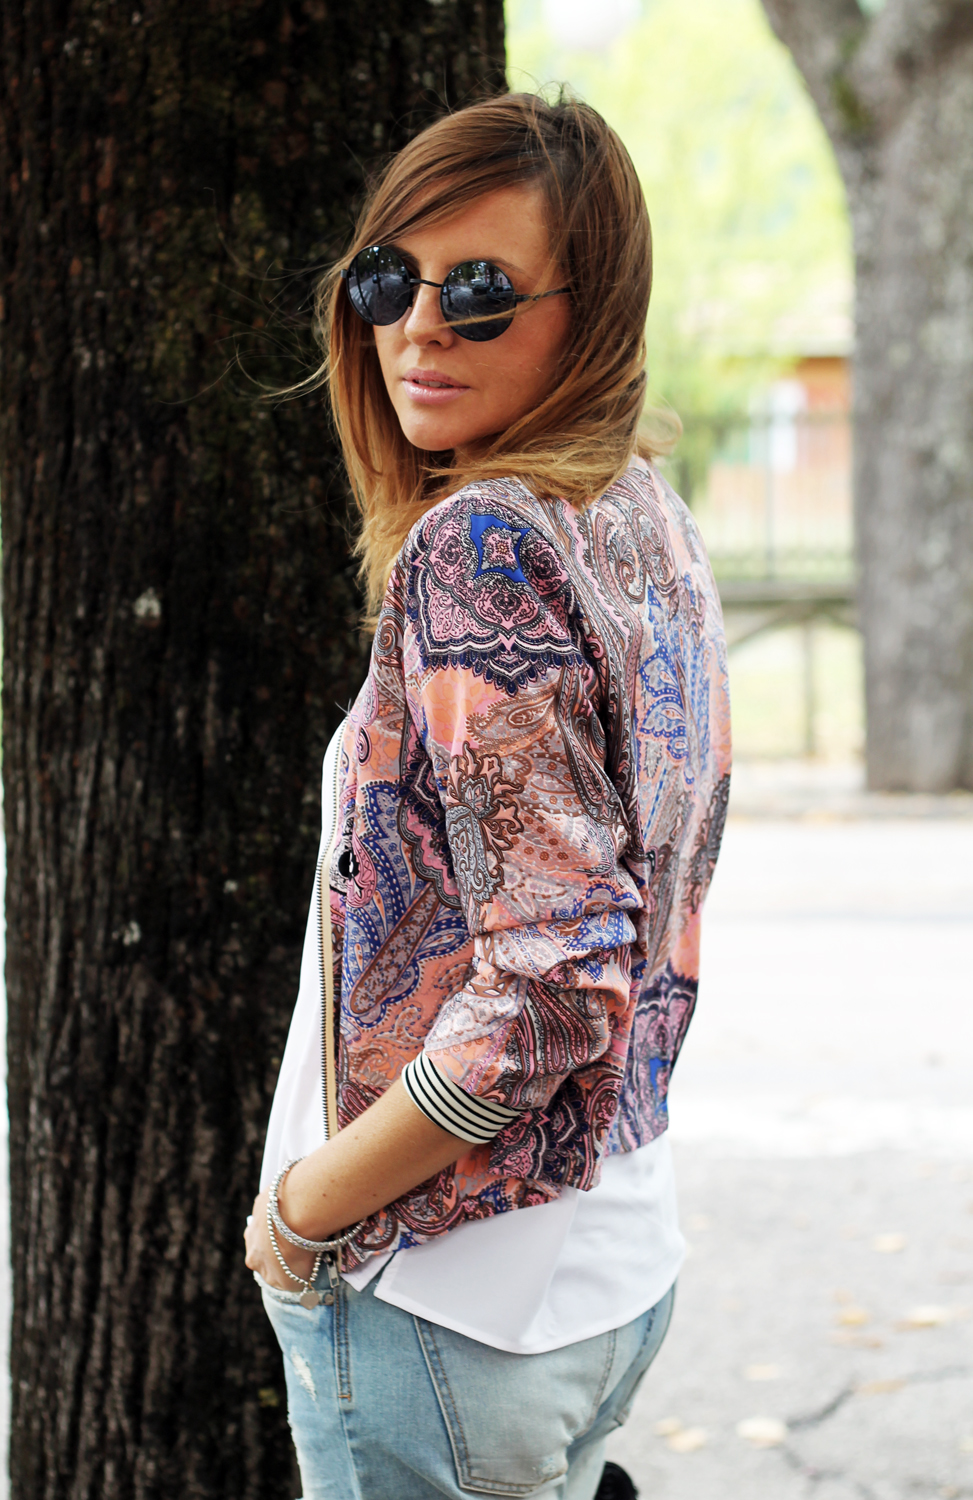 4-francesca-focarini-fashion-blogger-firmoo-round-sunglasses